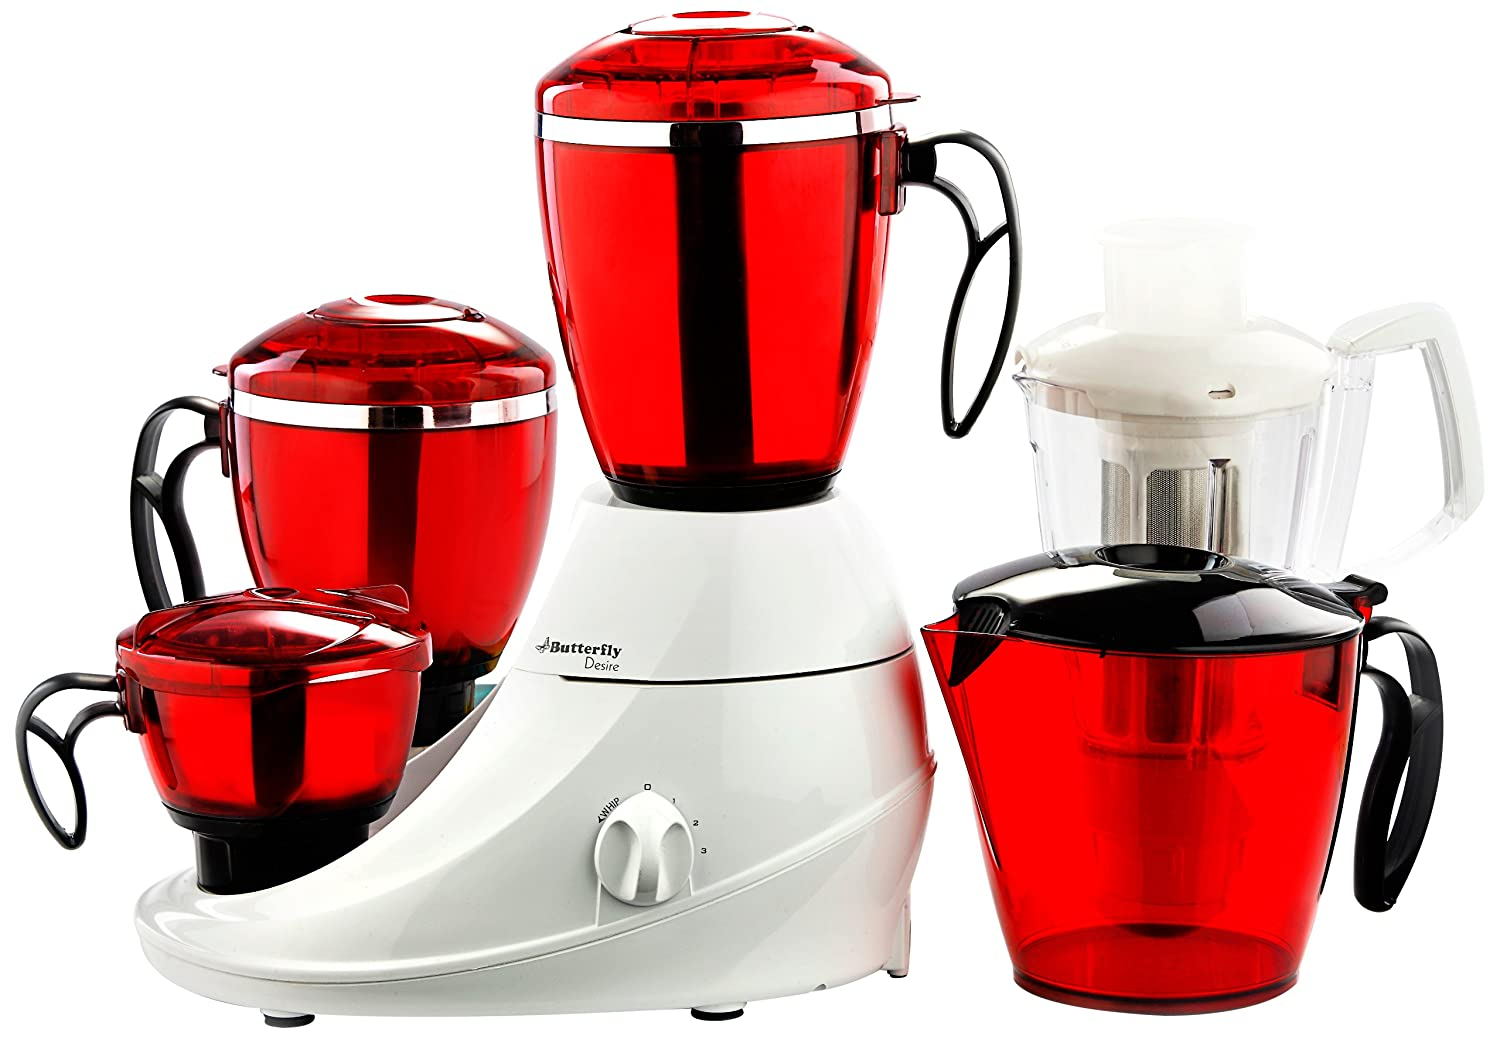 Coloured Kitchen Appliances Buy Butterfly Desire Mixer Grinder With 4 Jars Red And White